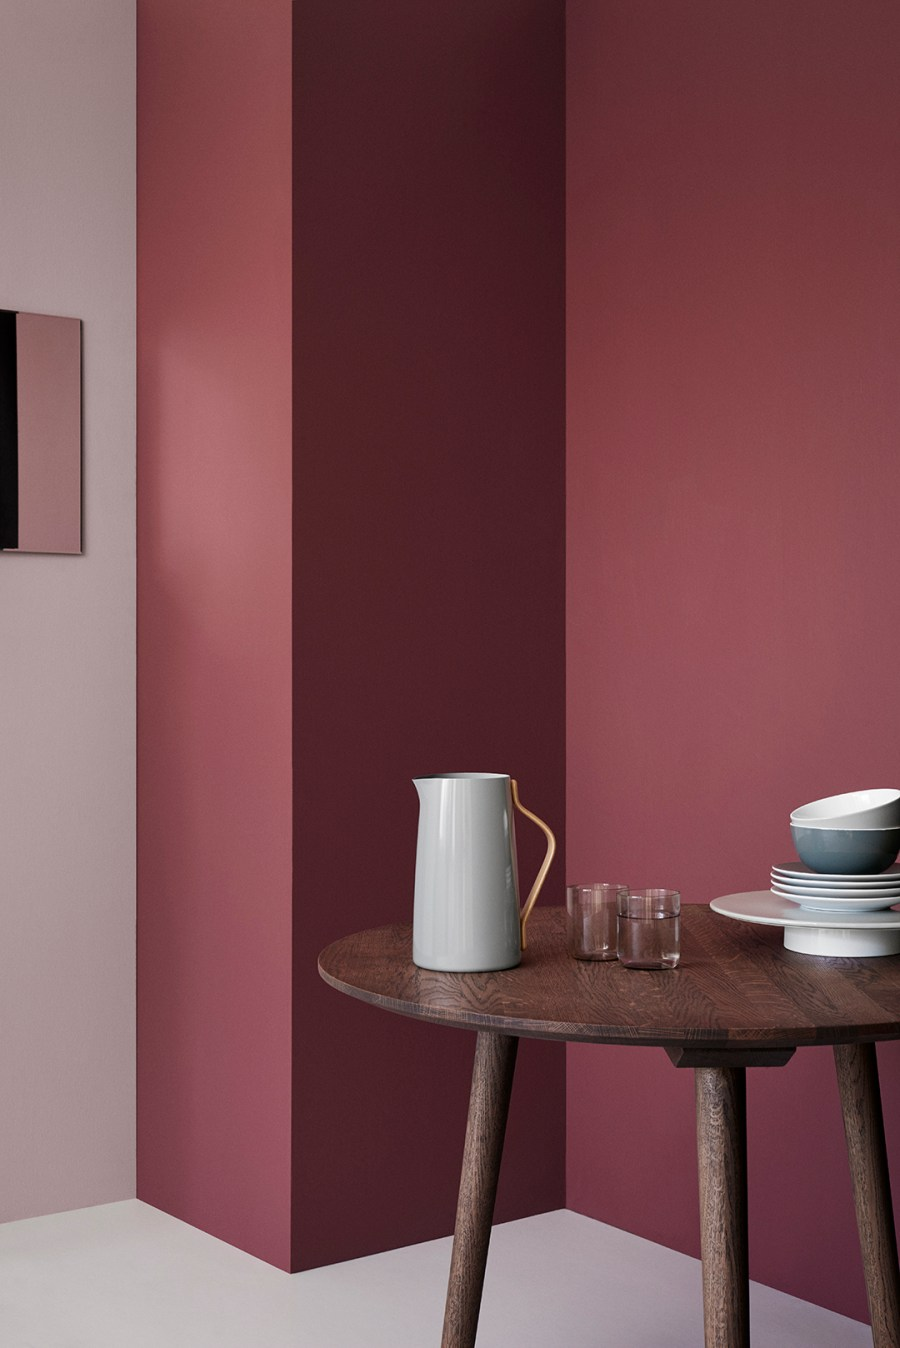 Your Home Needs This: Stelton's Emma kettle, now in new colours!